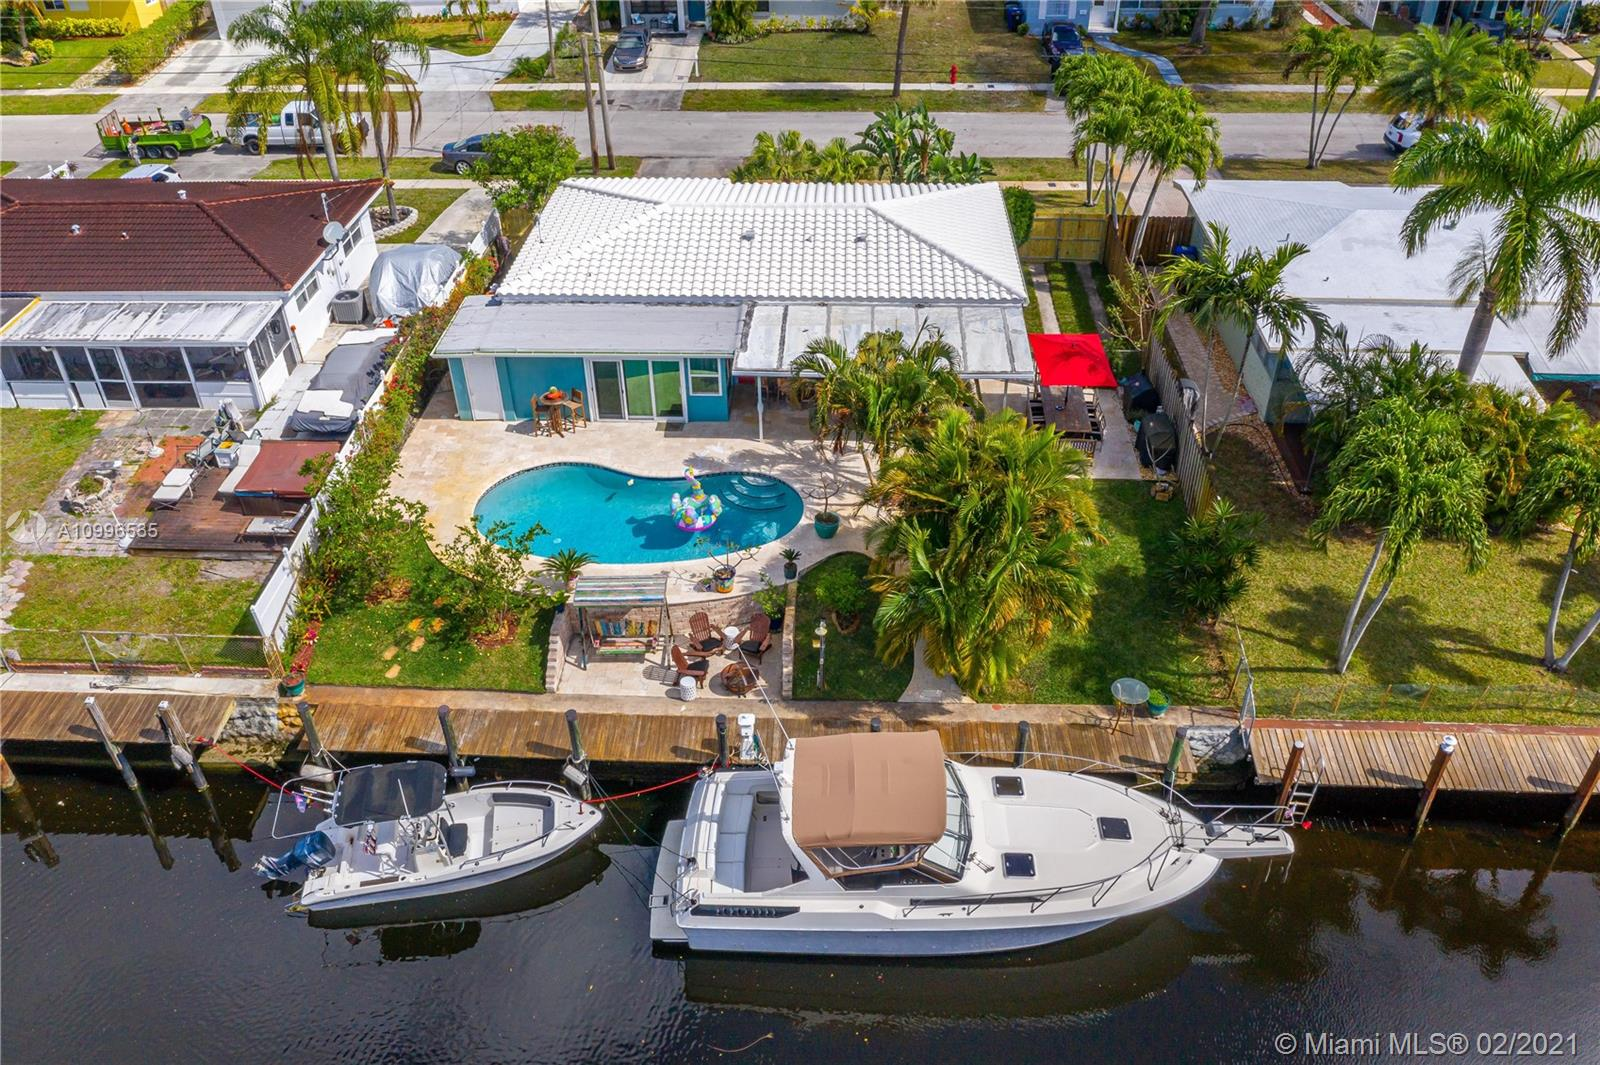 Gorgeous home with 70 feet of waterfront on canal opening to the New River, Deep water, NO FIXED BRIDGES to Ocean. Massive upgrades! Showcases a bright, open concept GREAT ROOM & KITCHEN!  Features a split bedroom plan with a huge primary bedroom and custom closets. Relaxing FLORIDA ROOM/poss 3rdBR. Large laundry room, w/deep washtub, & cabinetry. New Ceramic barrel style Roof and Impact windows, wood look ceramic tile floors, Plantation shutters, and A/C. Amazing Kitchen w/exquisite quartzite island & counters, Soft close drawers. Dock with electric (32AMPS) & water. Beautifully landscaped front & backyard, enormous Travertine patio and pool. An entertainers dream - complete with a fenced yard. Close to Las Olas, Downtown, Airport, and Fort Lauderdale Beach. SEE BROKER REMARKS.